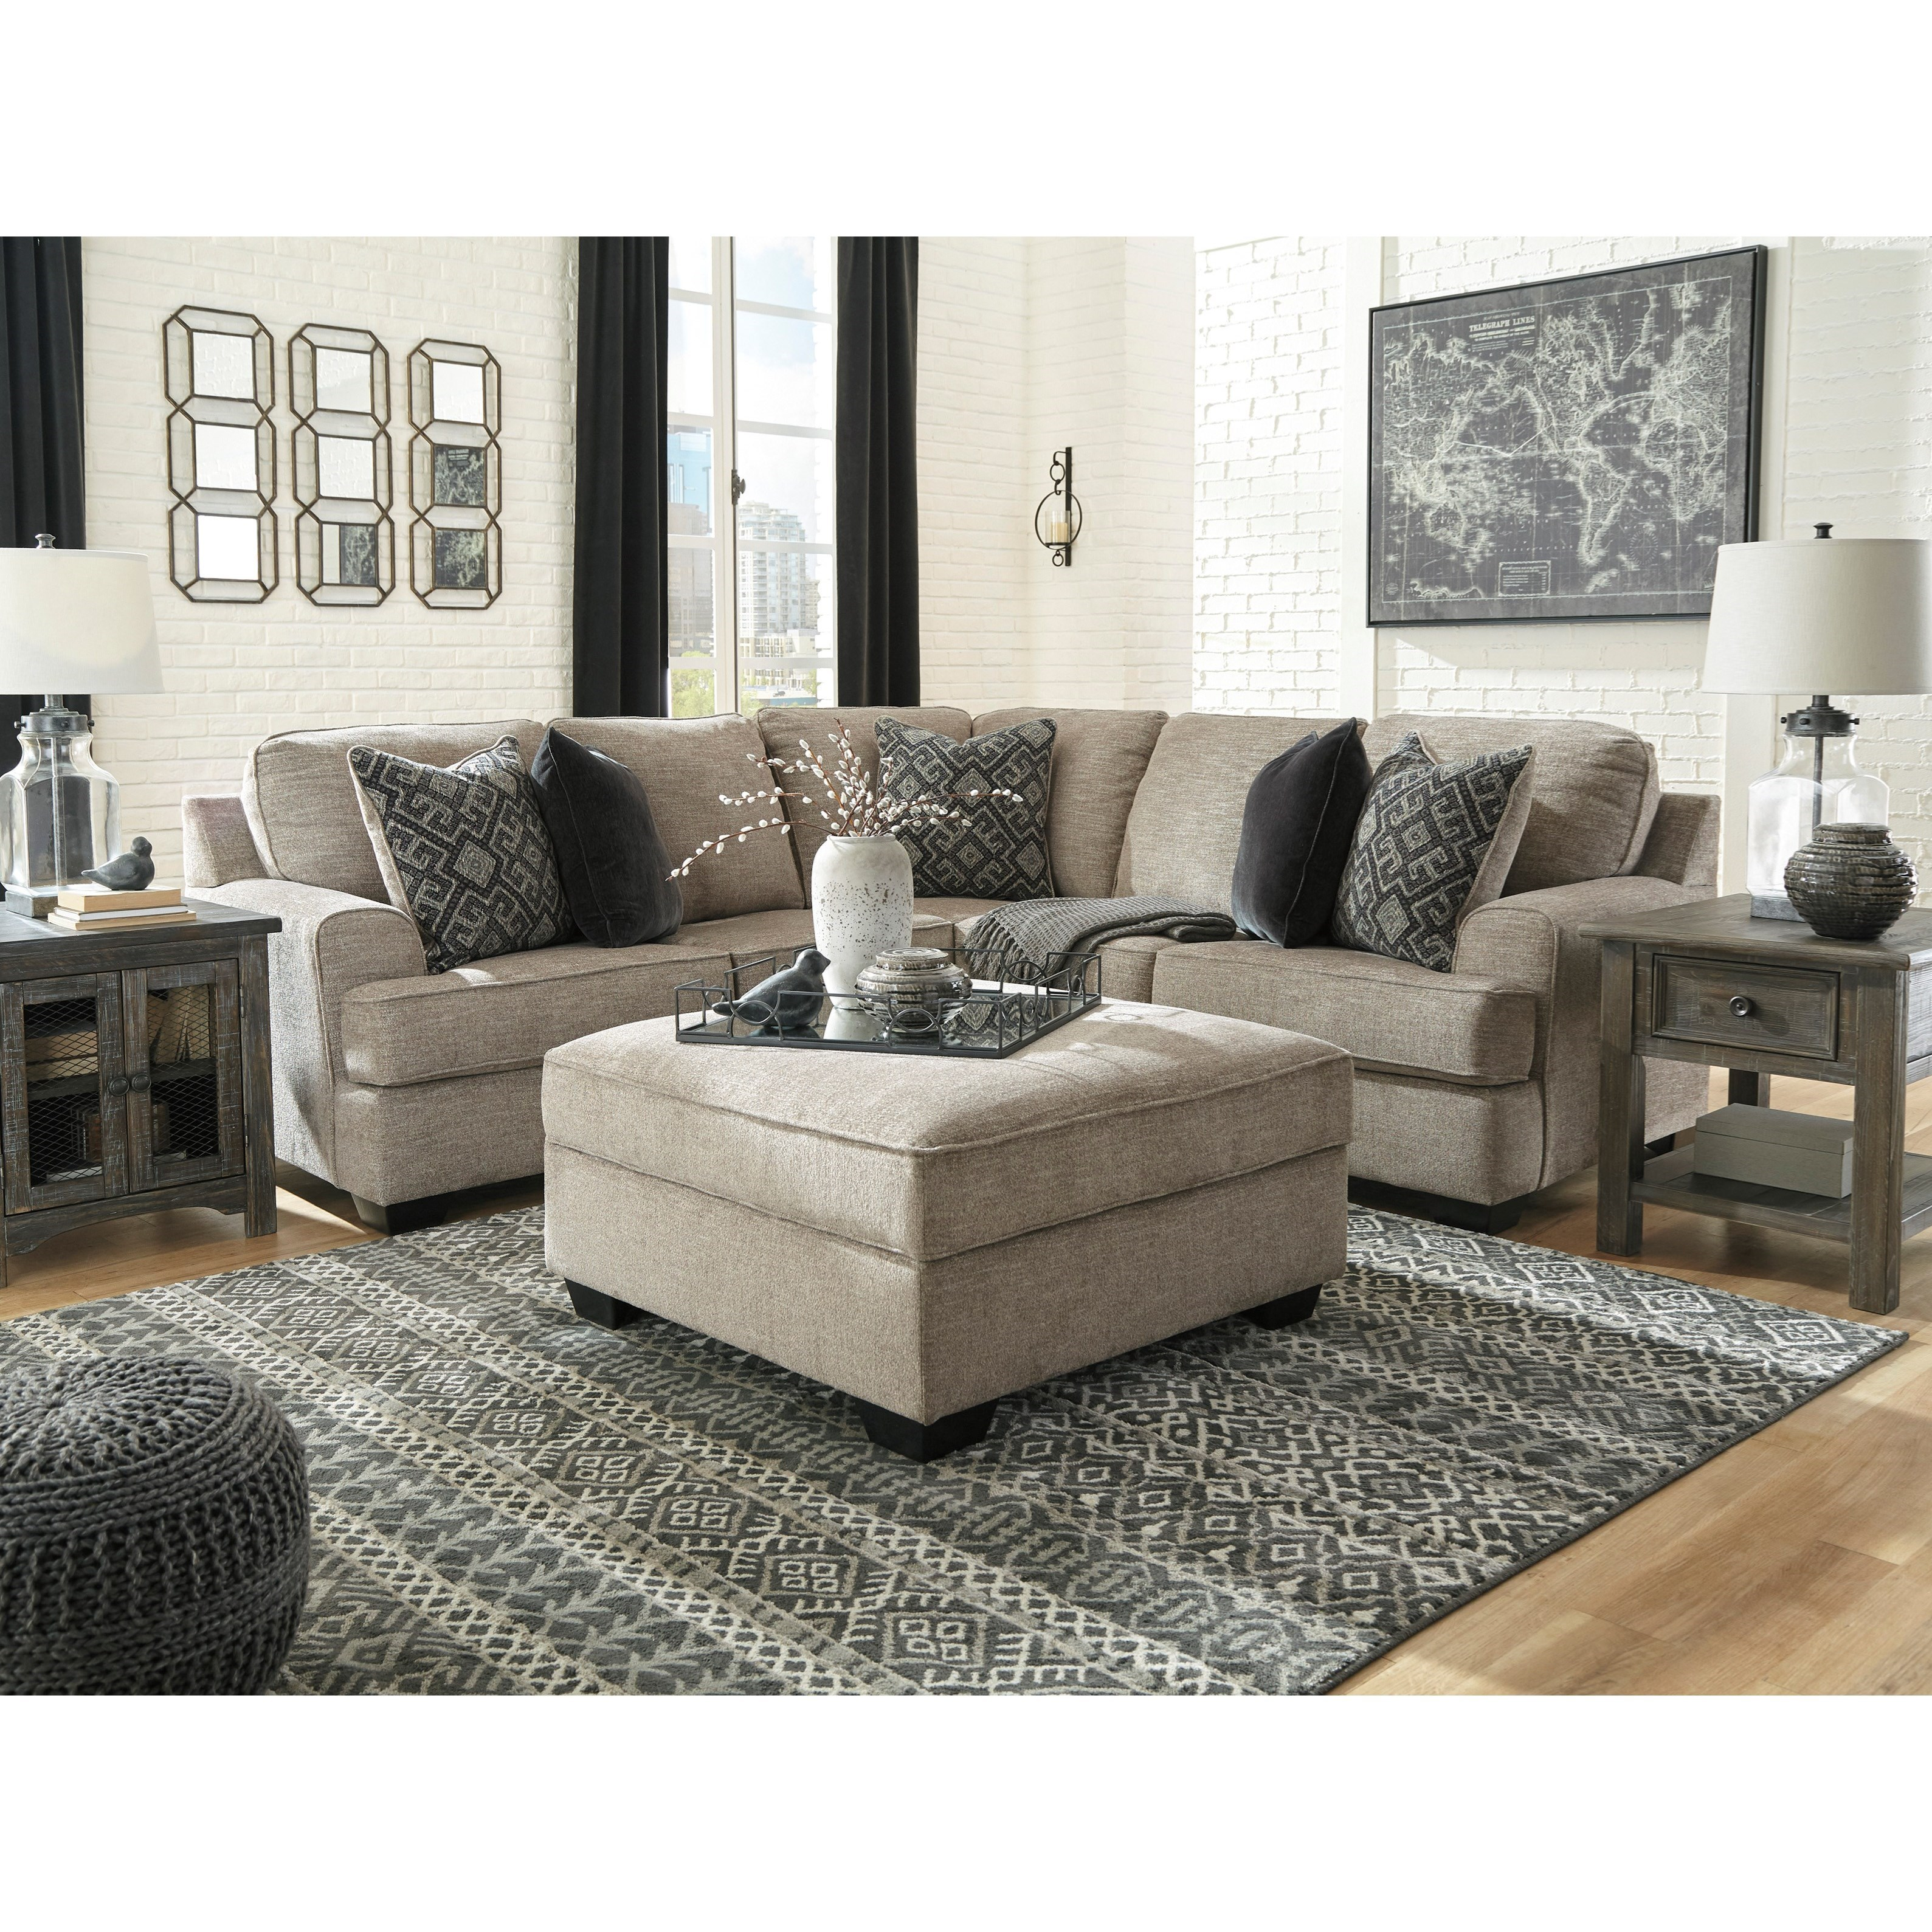 Bovarian Stationary Living Room Group by Signature Design by Ashley at Catalog Outlet